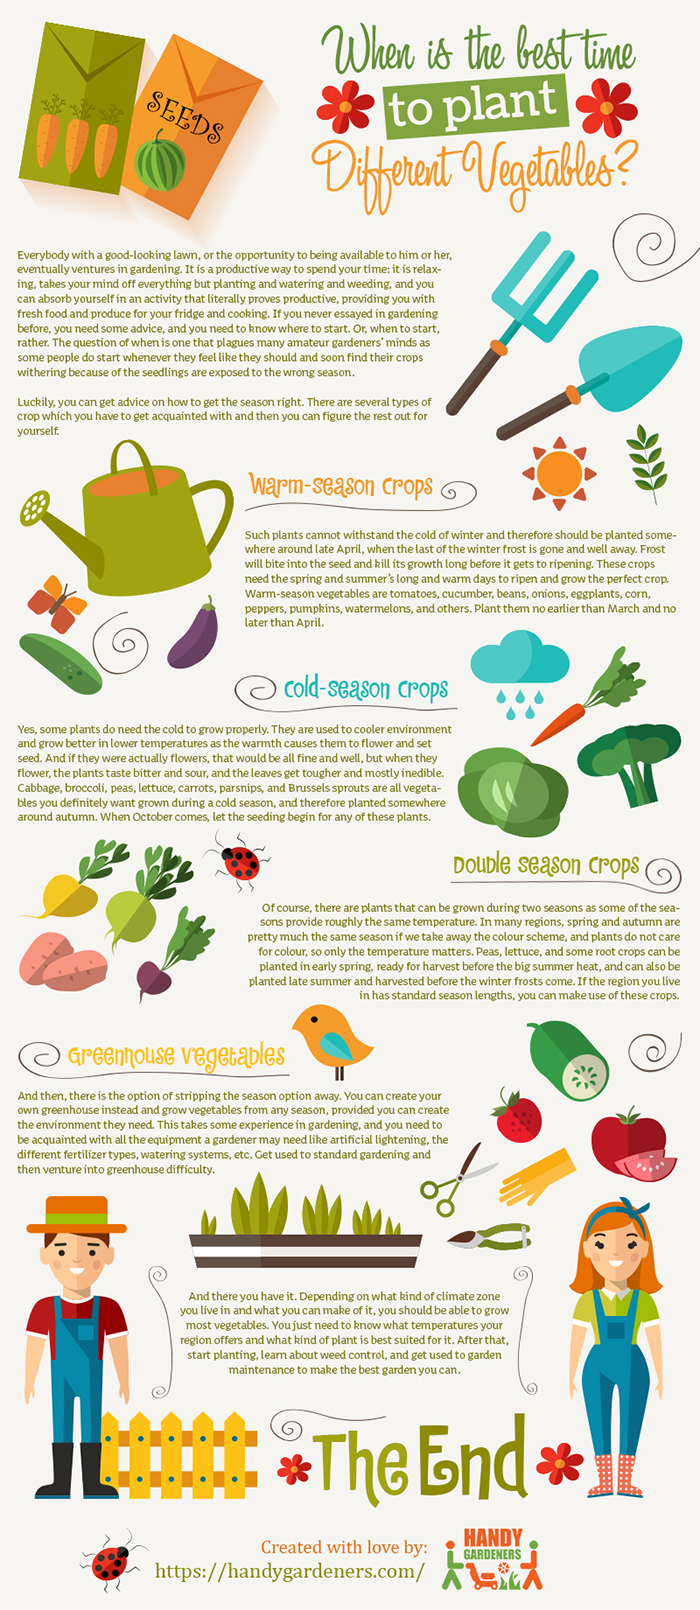 The experts from Handy Gardeners in London share an infographic with useful tips for beginner ga ...